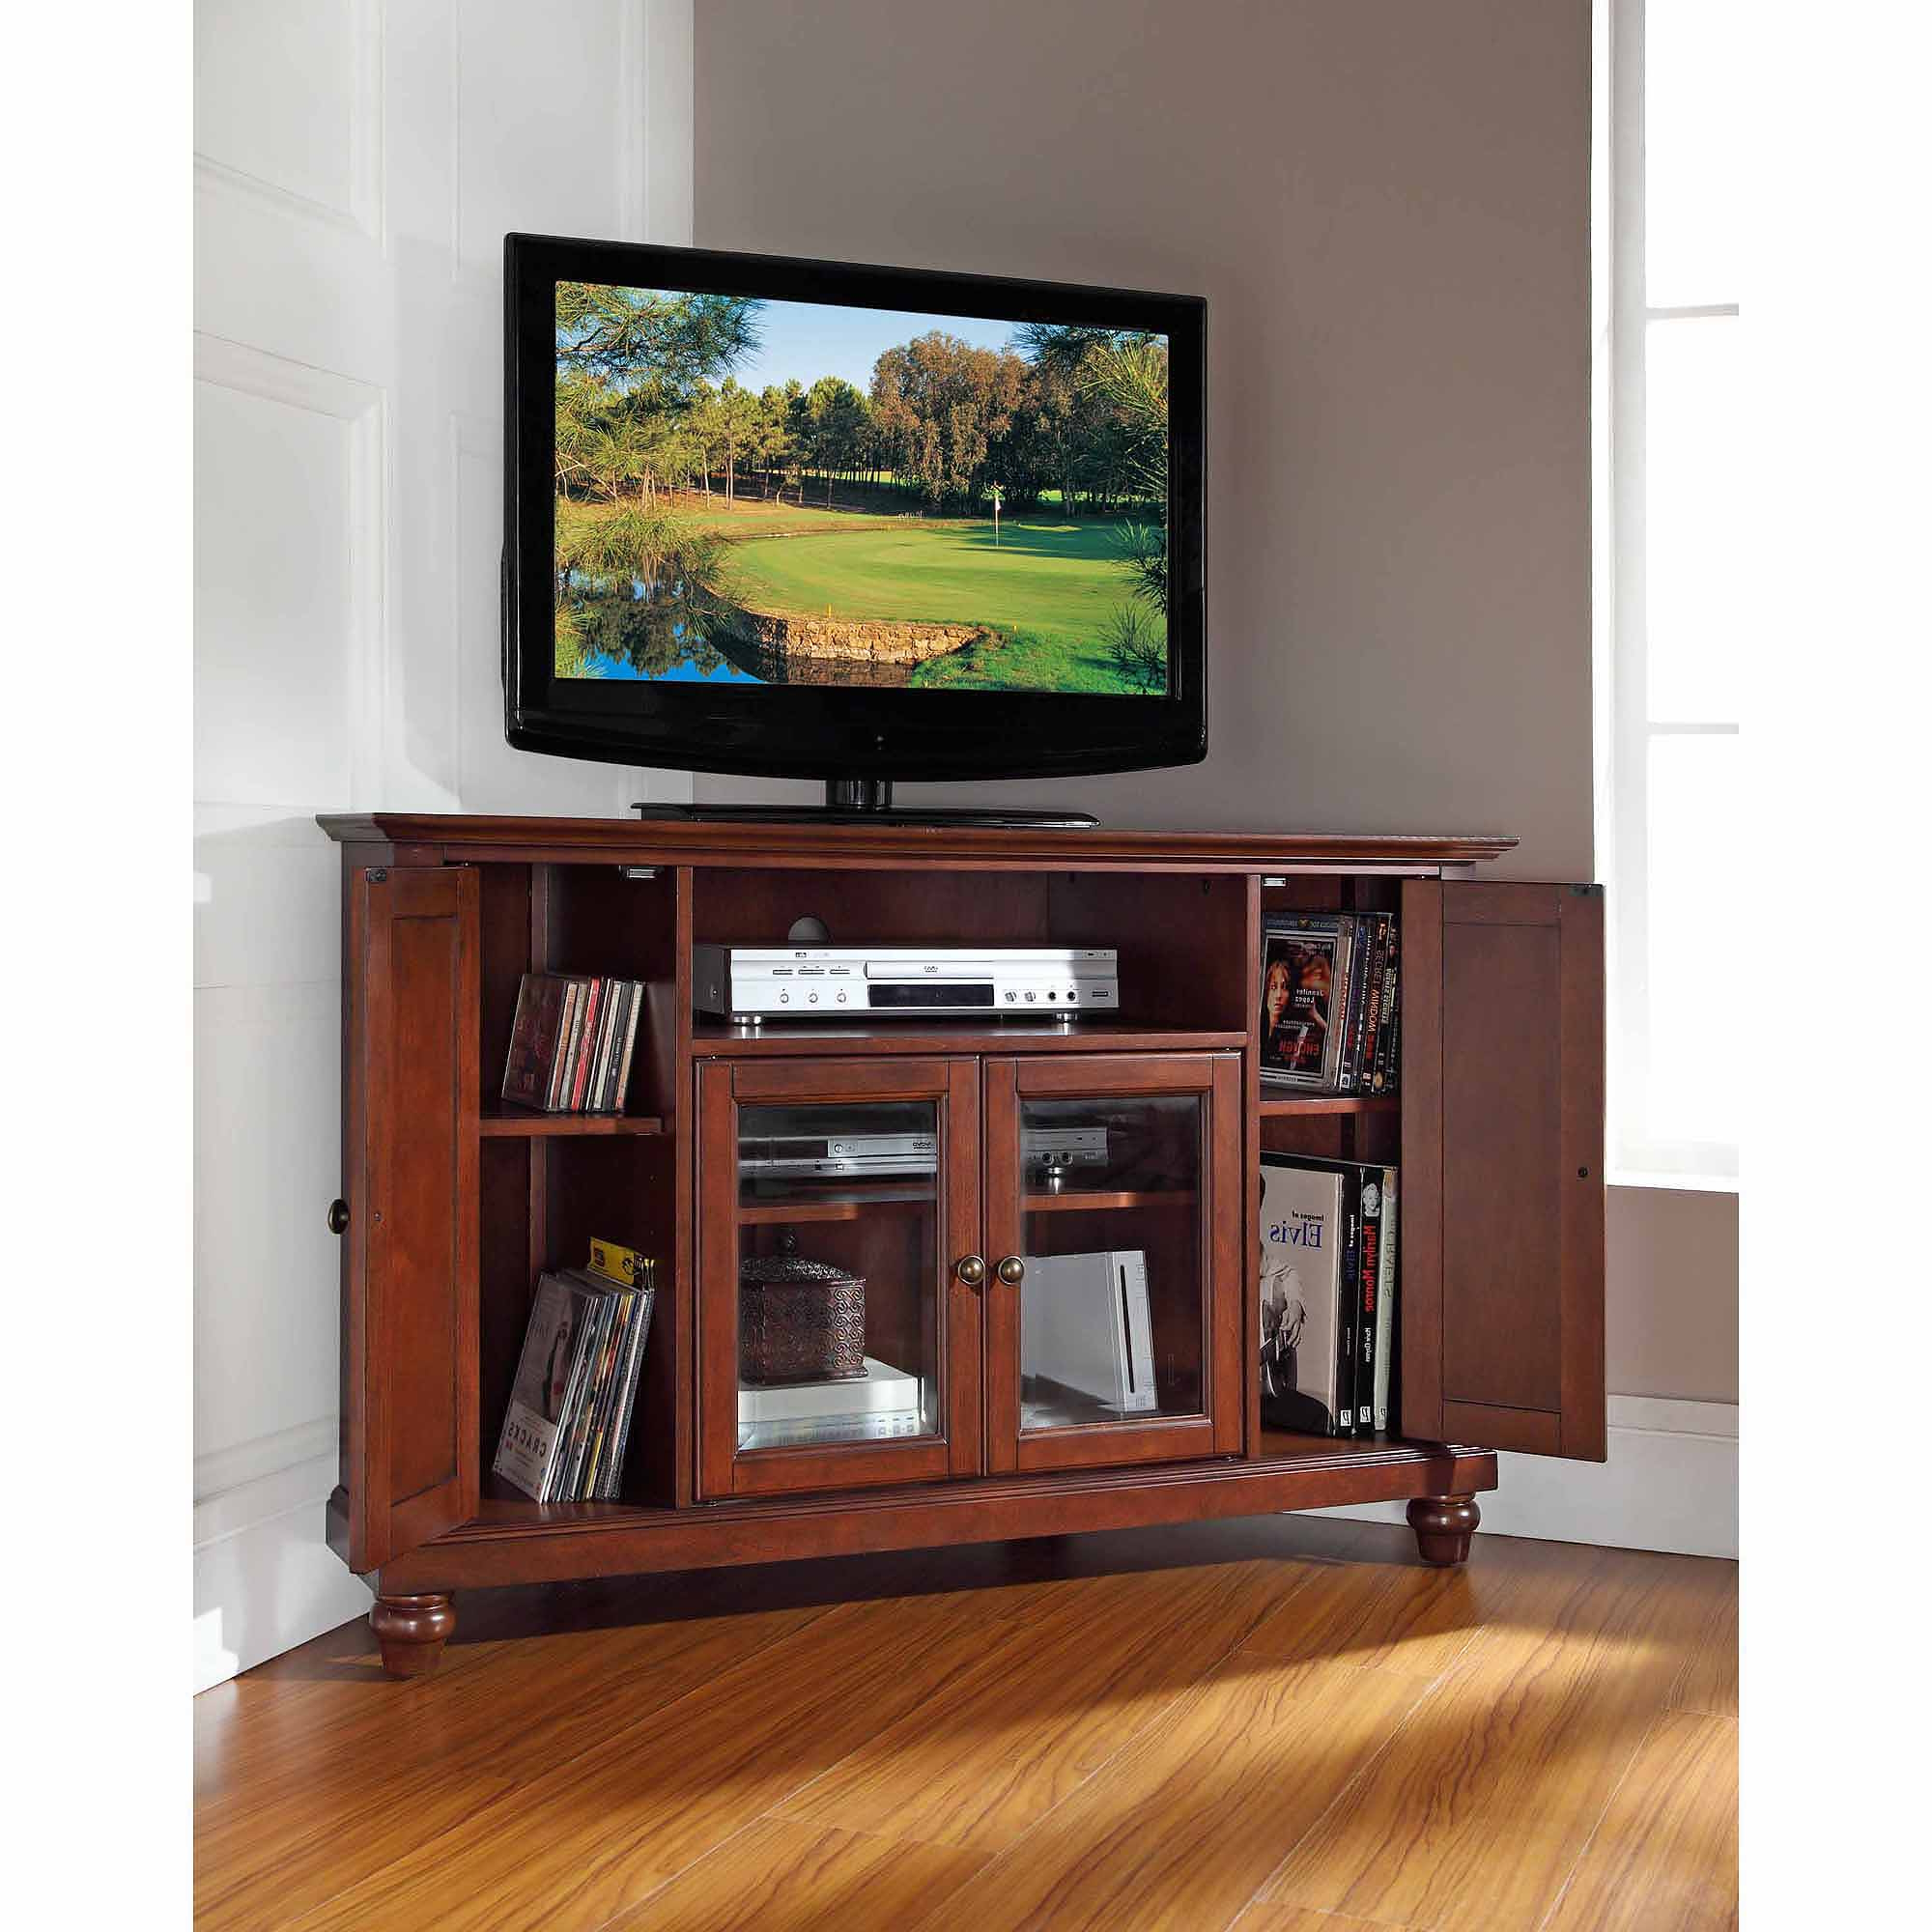 Crosley Furniture Cambridge Corner Tv Stand For Tvs Up To 48 In Widely Used Large Corner Tv Stands (View 5 of 20)